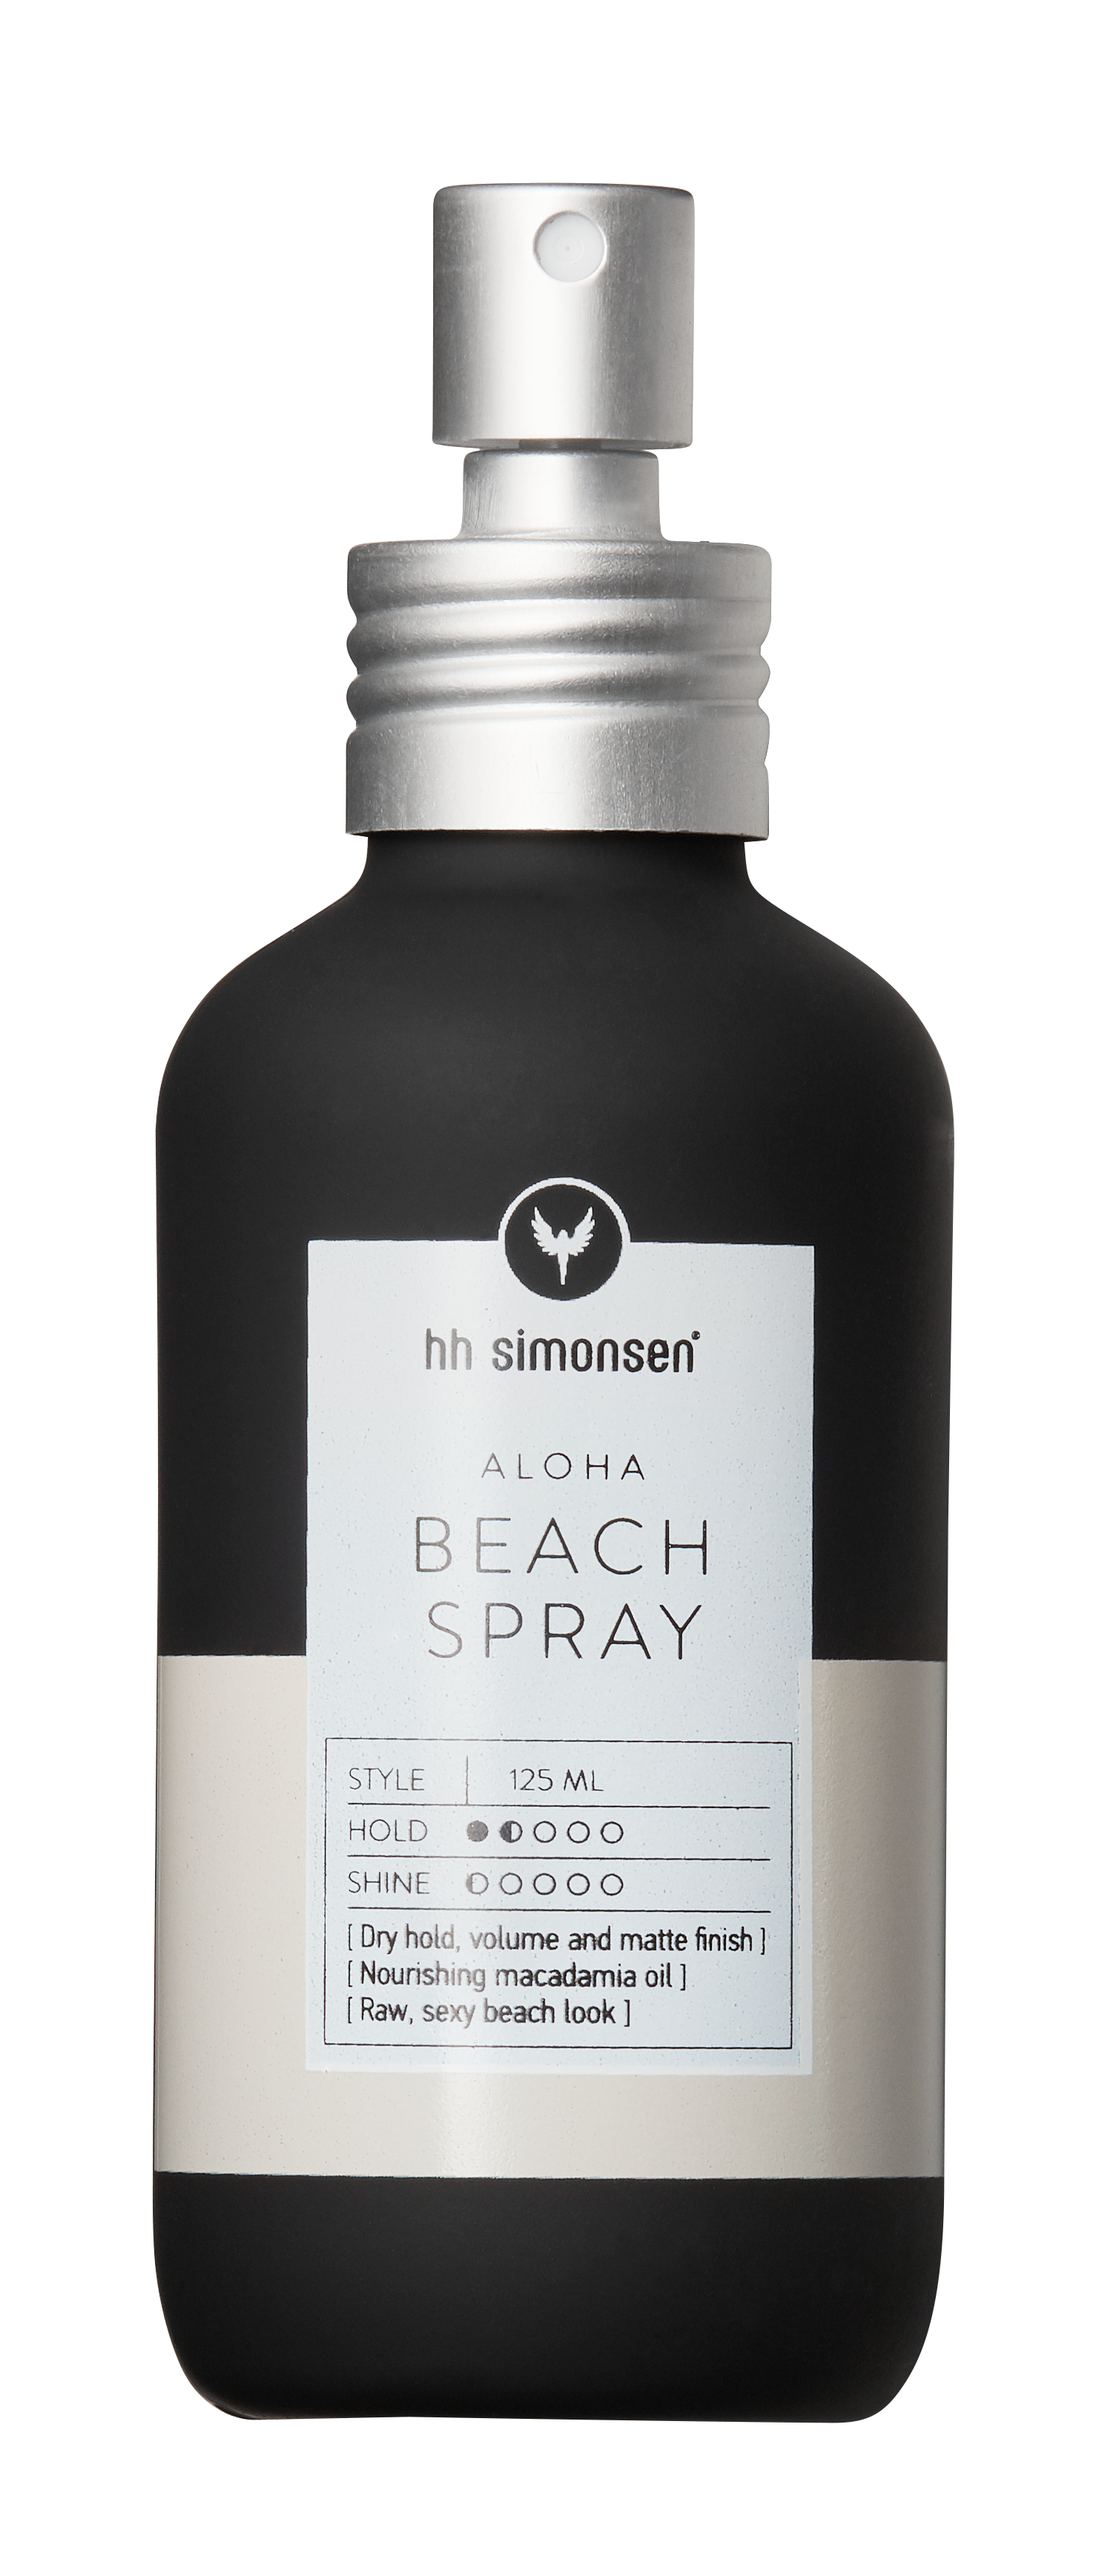 HH Simonsen - Beach Spray 125 ml